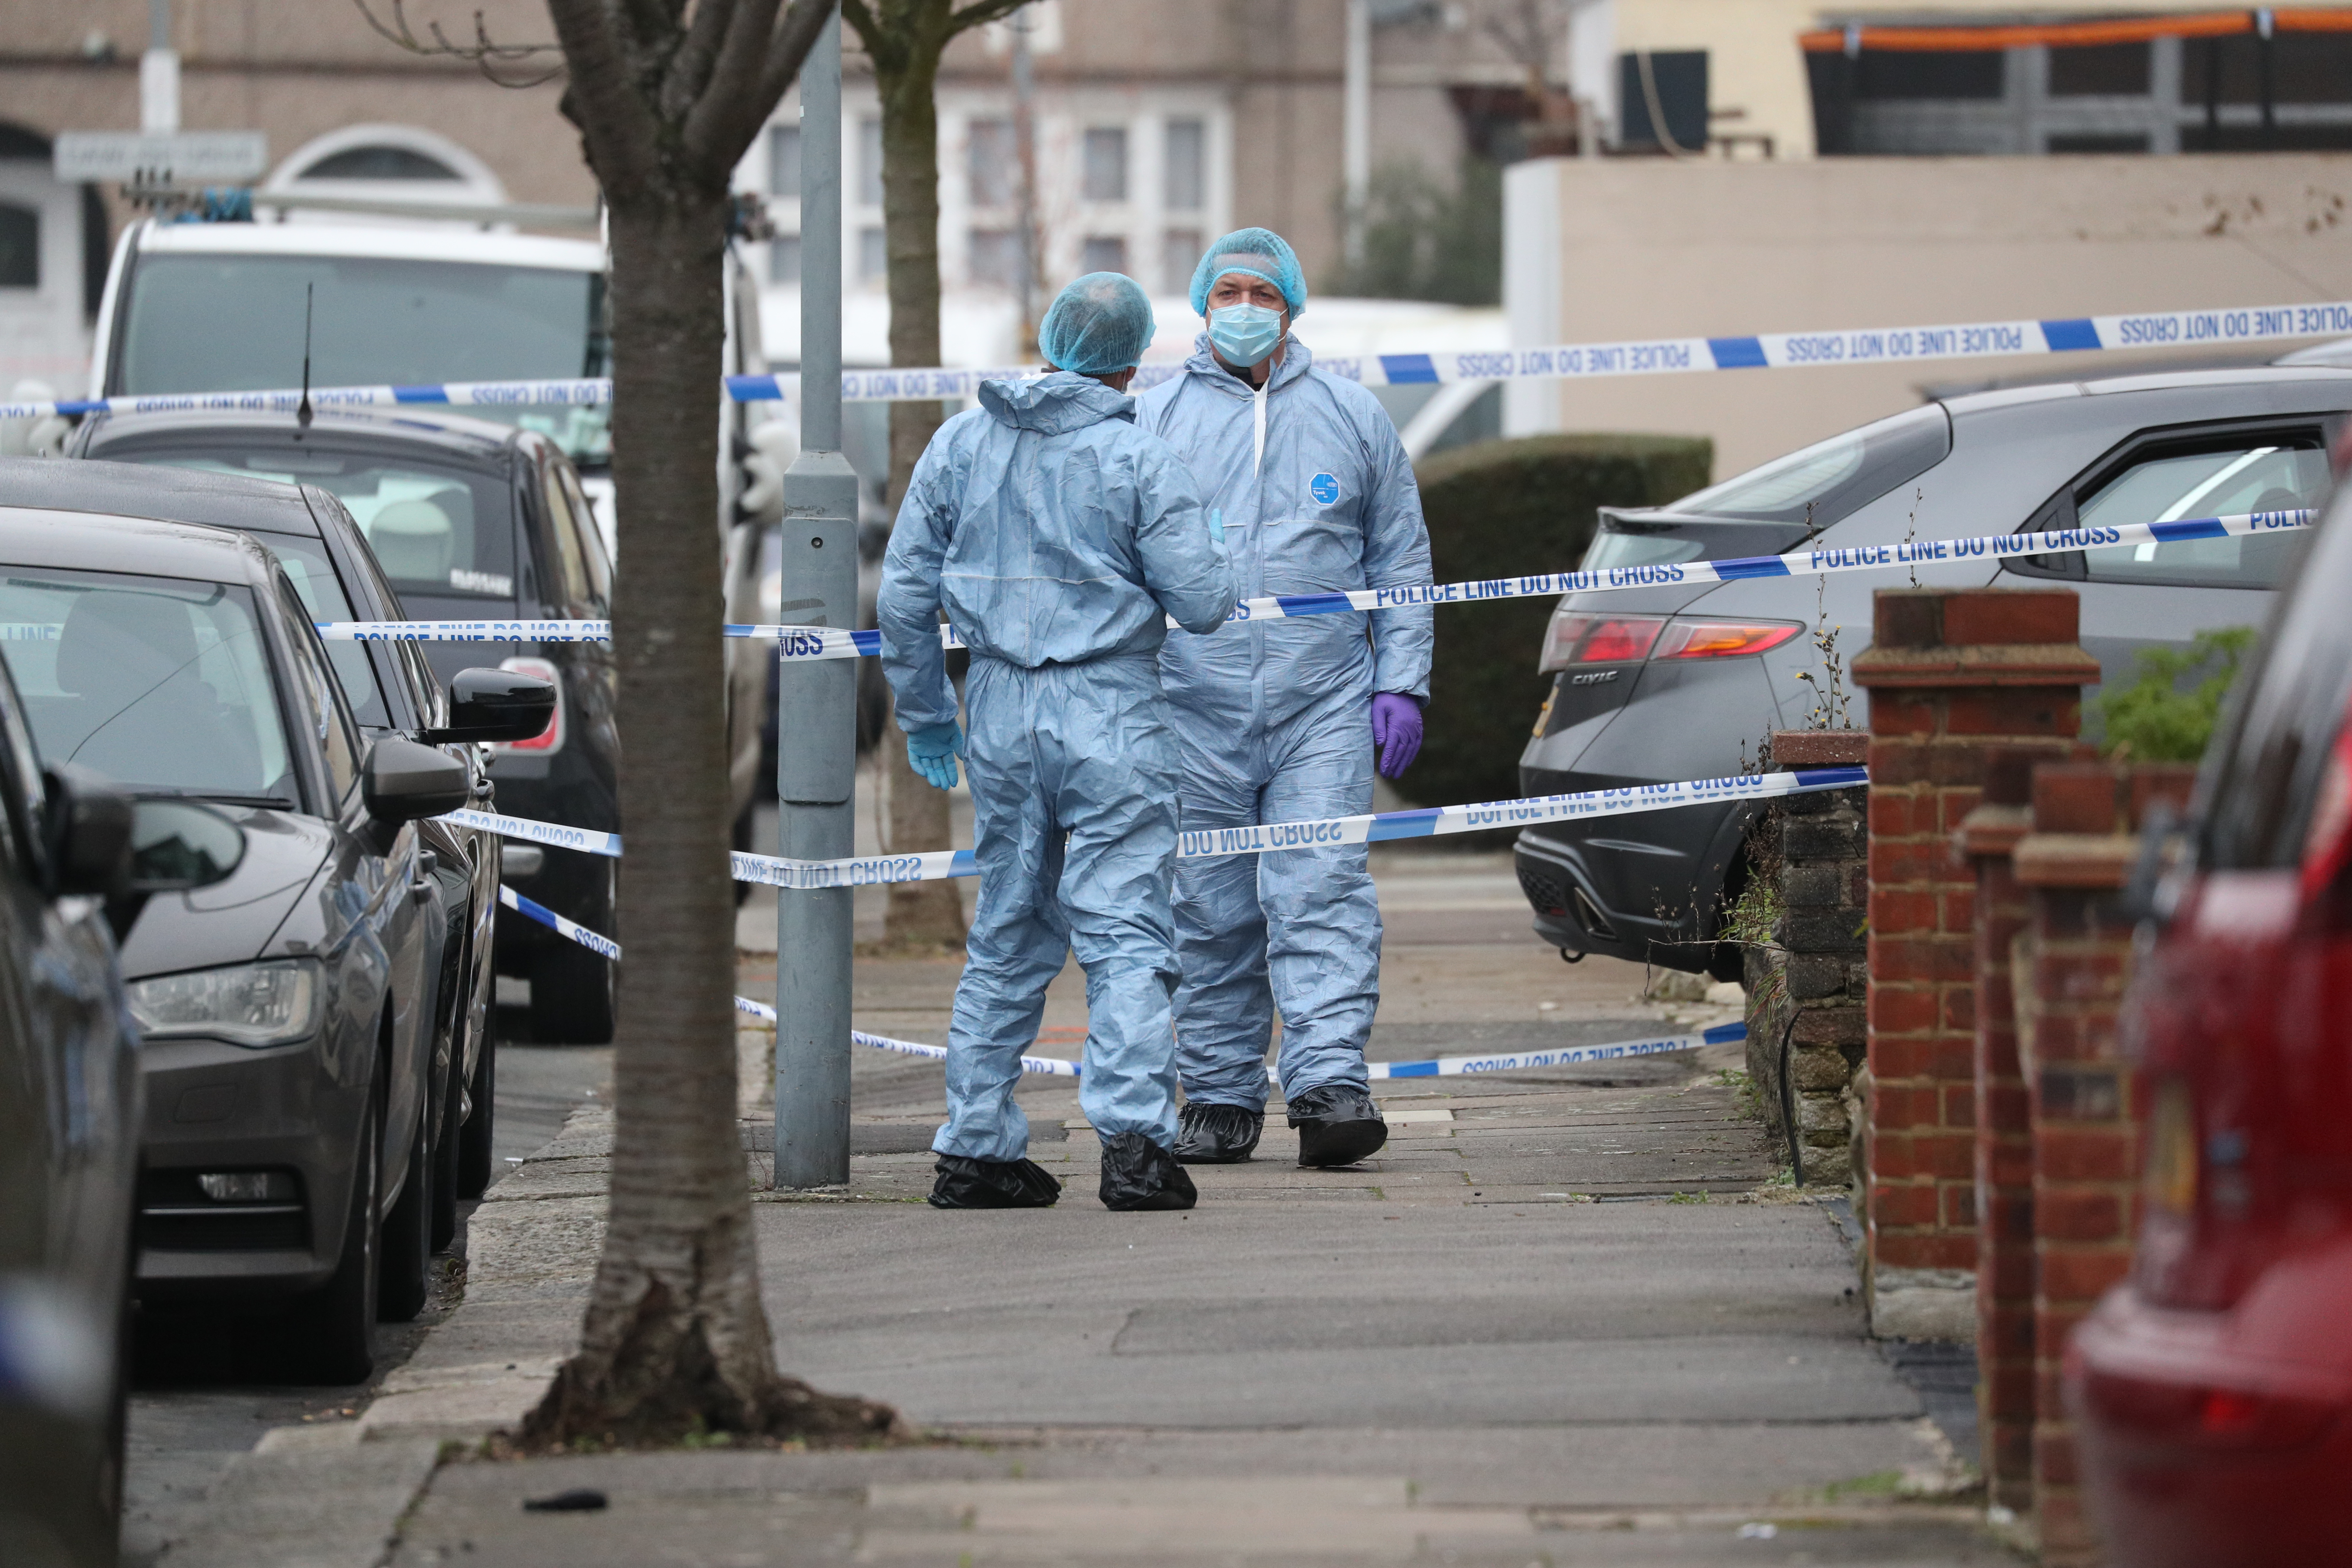 Forensic officers at the scene in Tavistock Gardens, Ilford, east London after two men died at a property in the street. The men were found seriously injured on Sunday morning and died at the scene, said the Metropolitan Police. A woman, who had non life-threatening injuries, was arrested at the scene and taken to hospital for treatment.